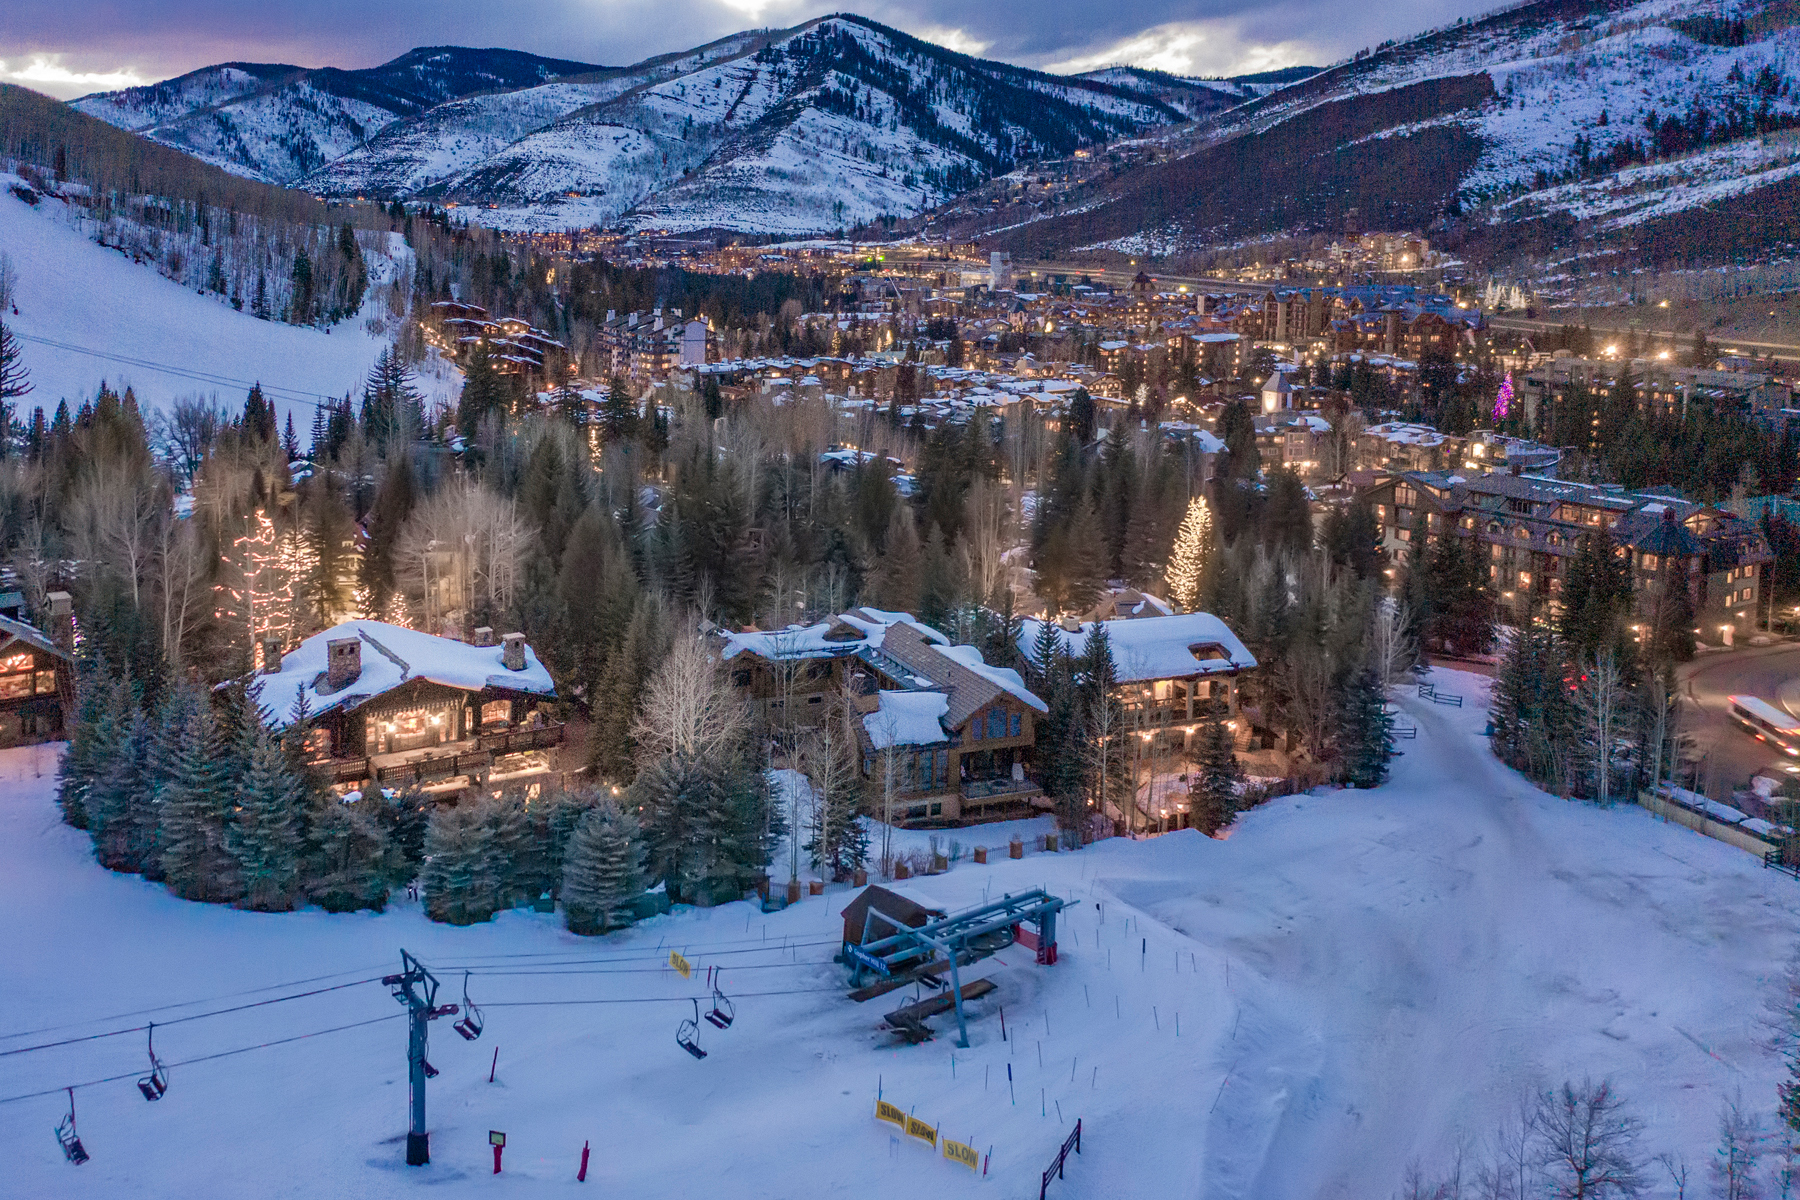 Single Family Homes for Sale at Premier Ski-In / Ski-Out on Mill Creek Circle 375 Mill Creek Circle Vail, Colorado 81657 United States